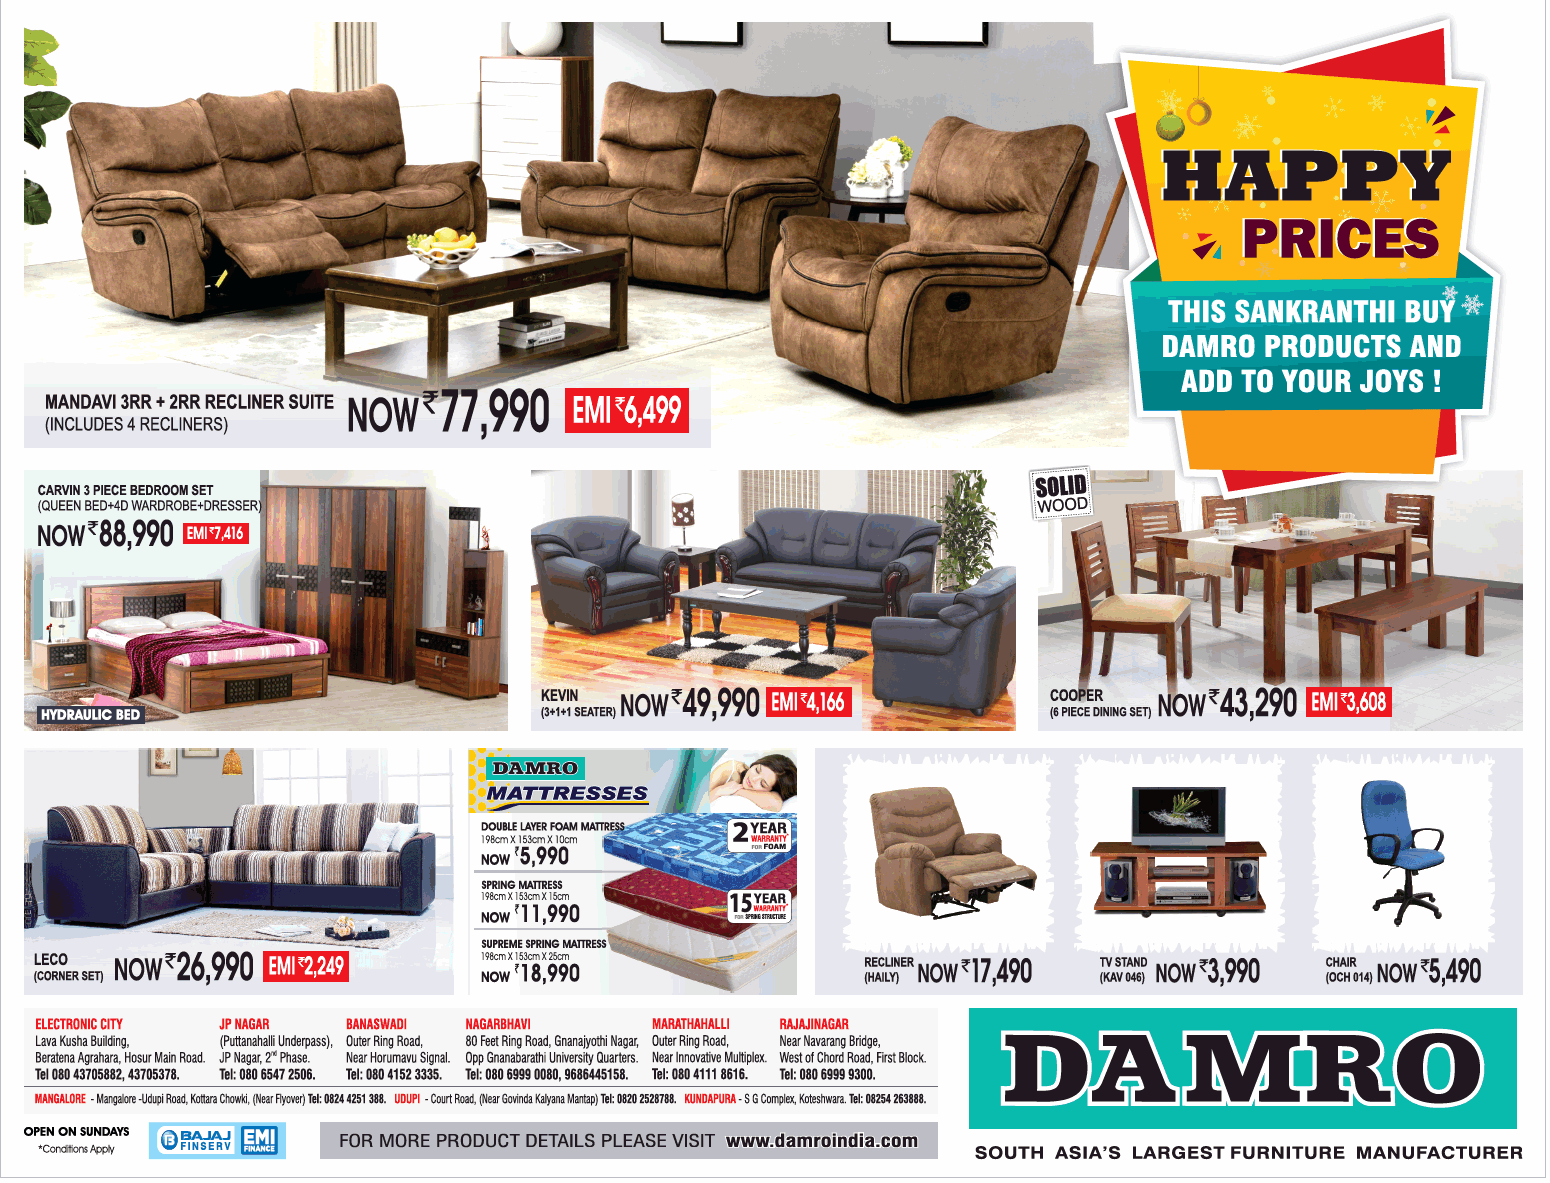 Damro Furniture Happy Prices This Sankranthi Buy Damro Products And Add To Your Joys Ad Advert